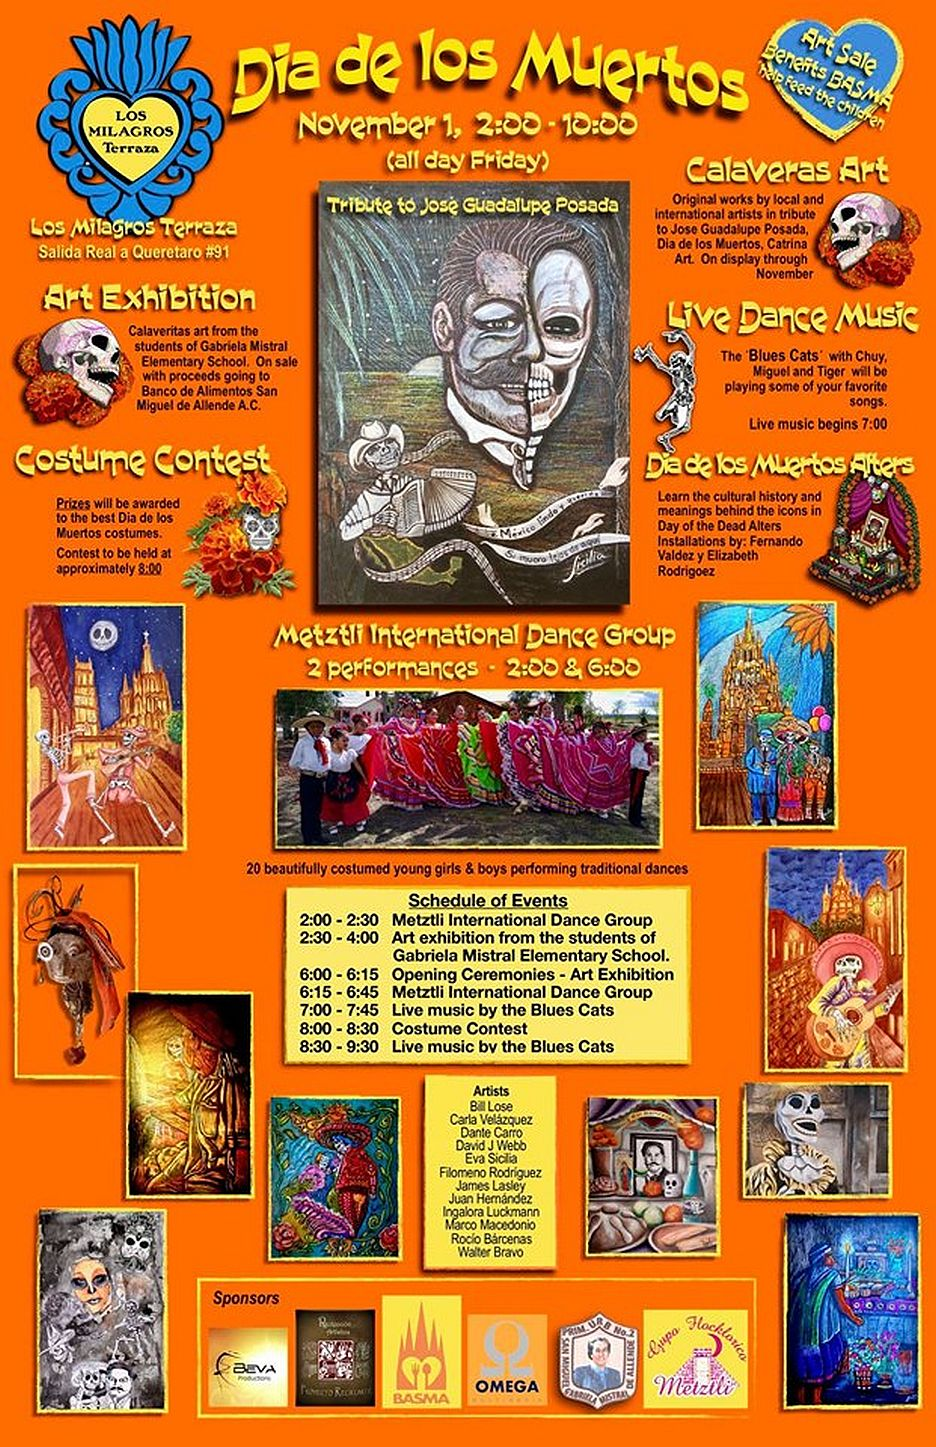 Day Of The Dead Celebration Los Milagros Terraza